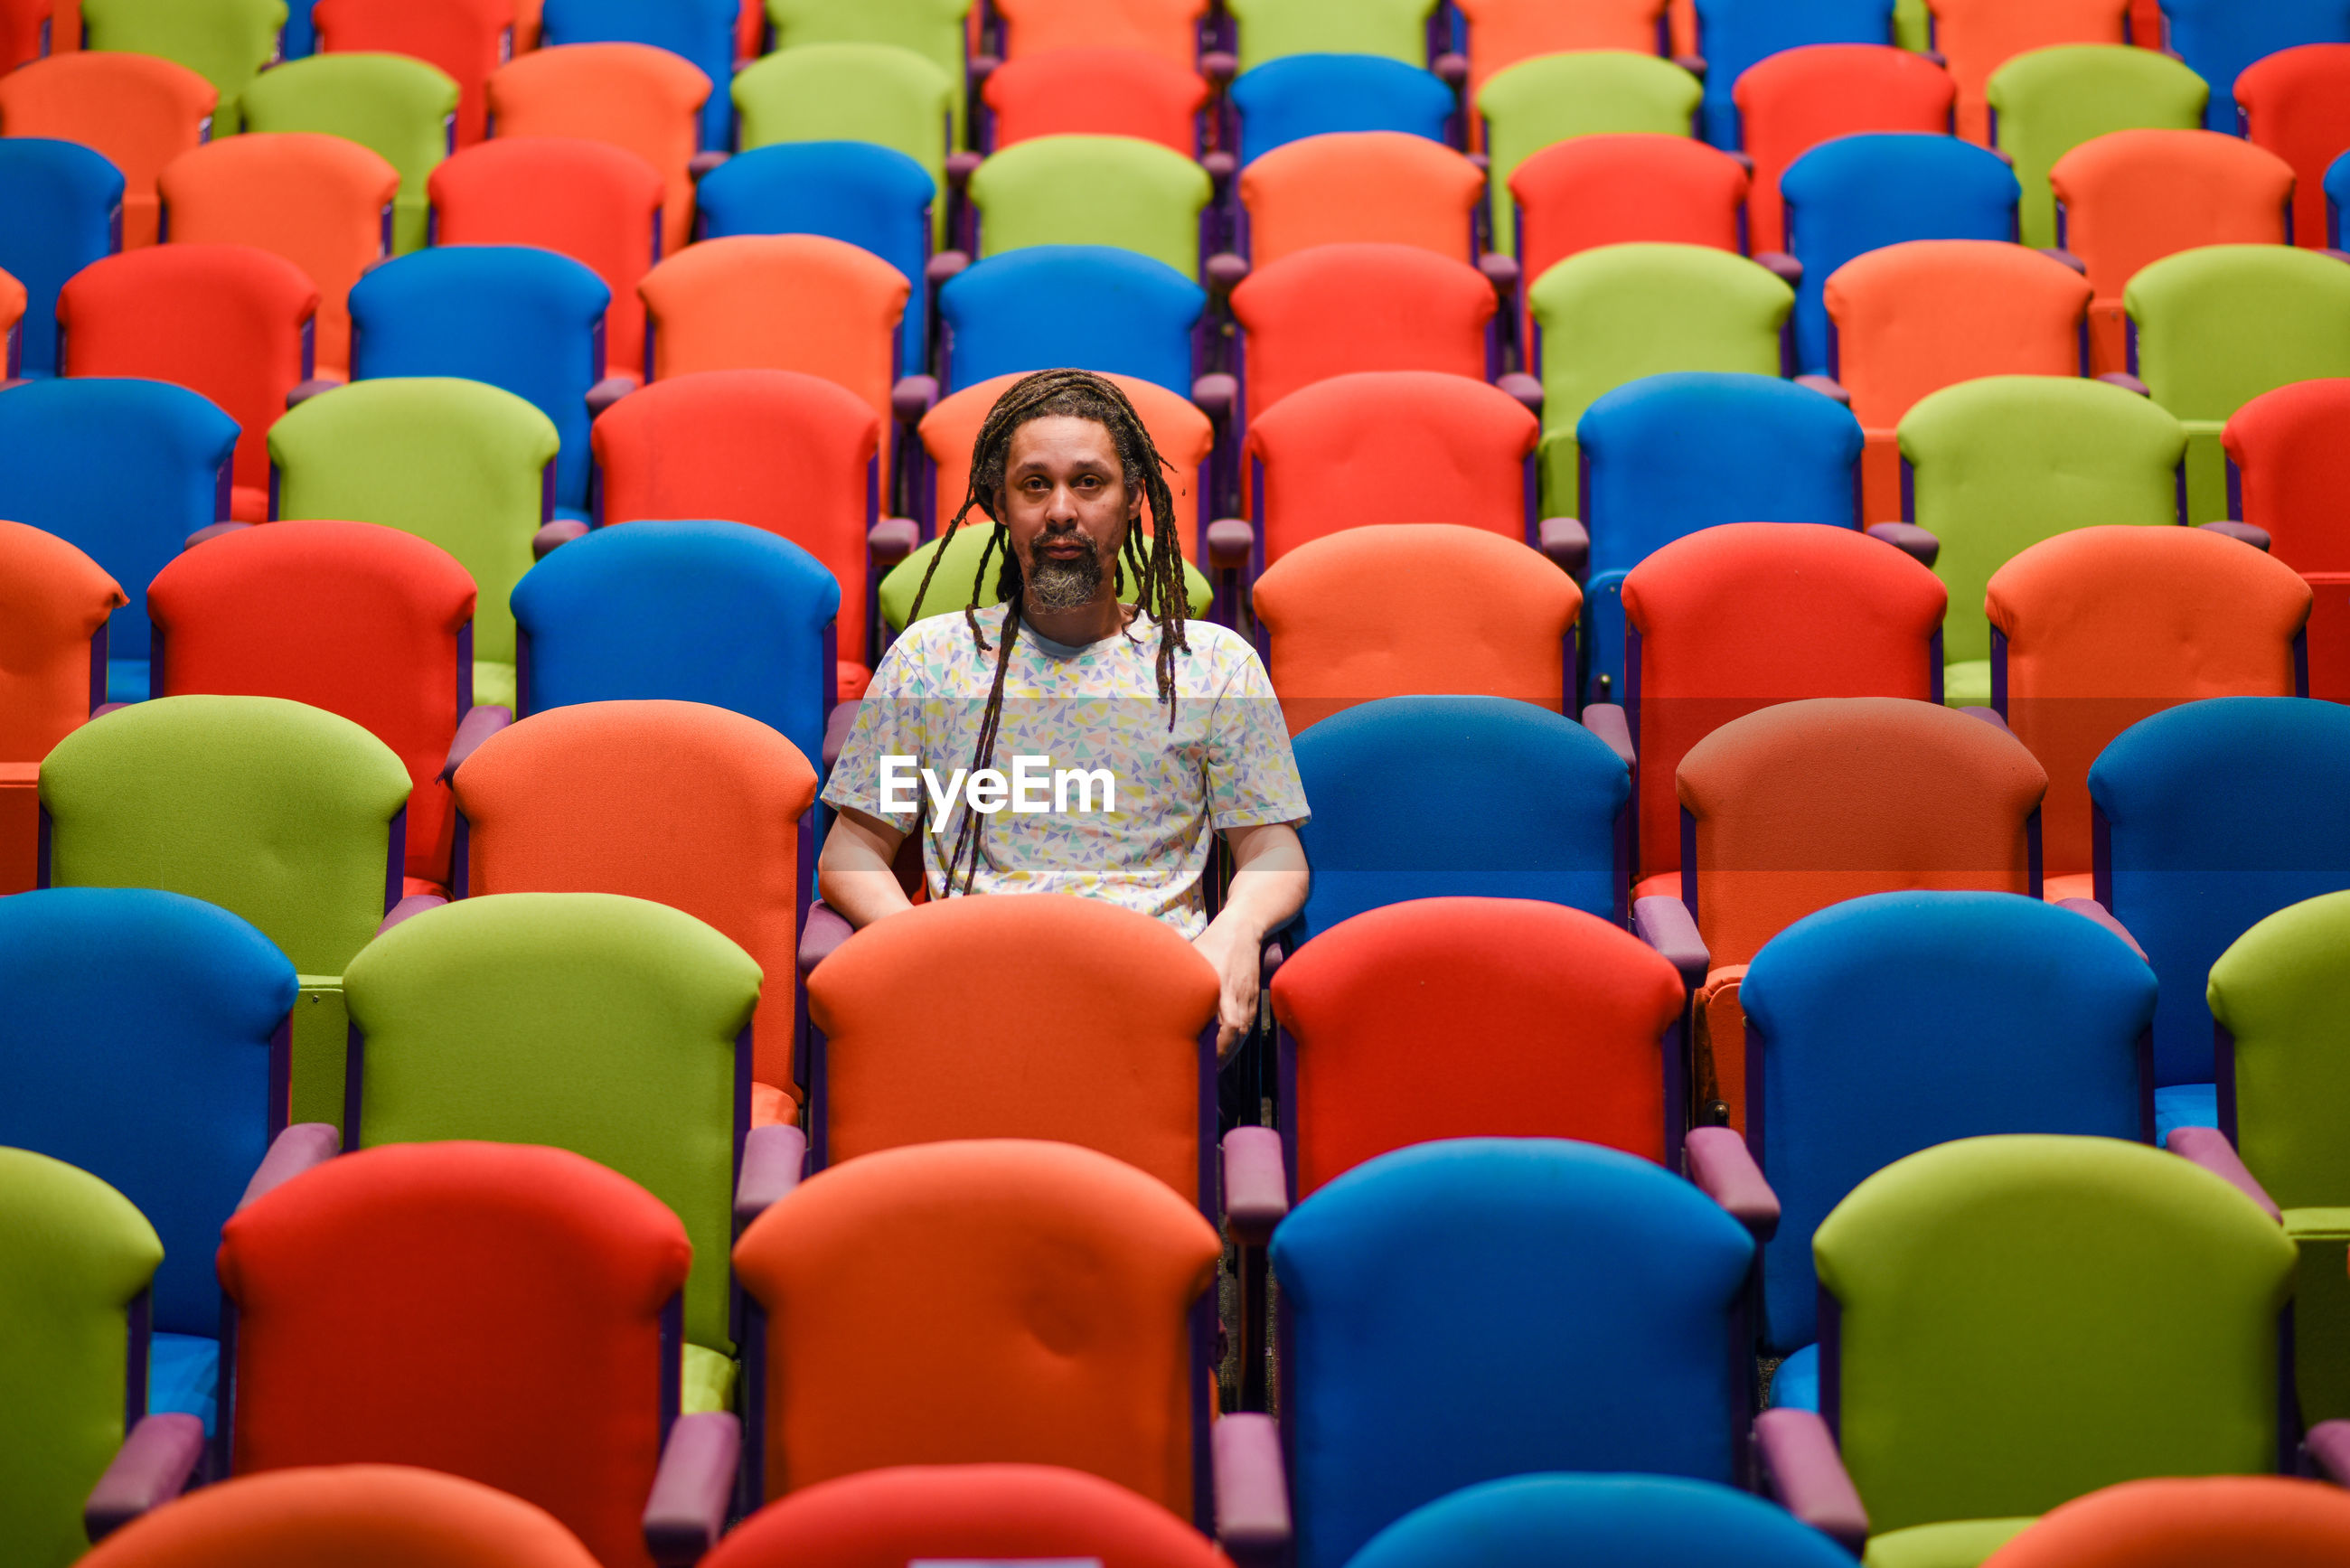 Colorful chairs with one person sitting alone in theatre